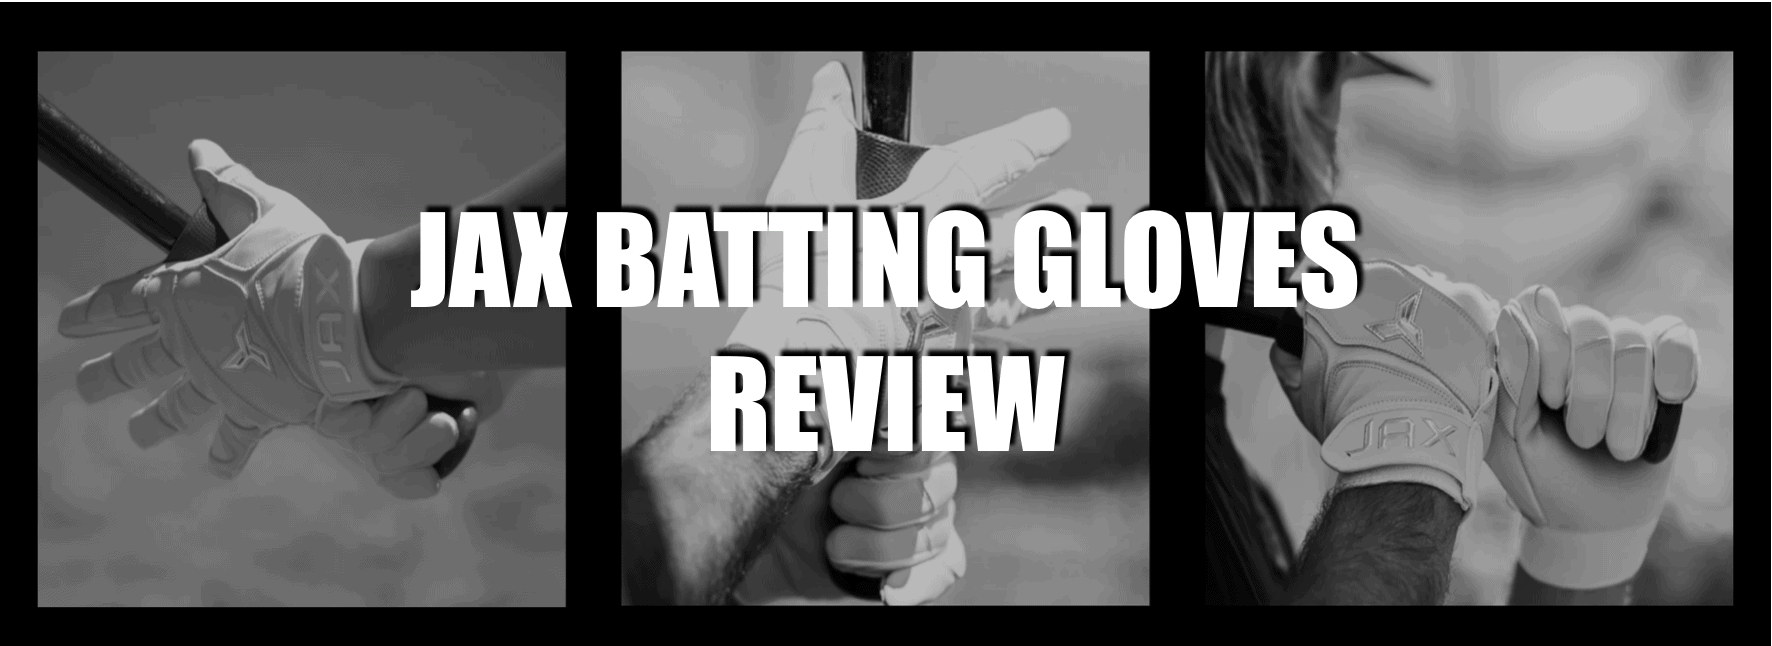 jax batting gloves review